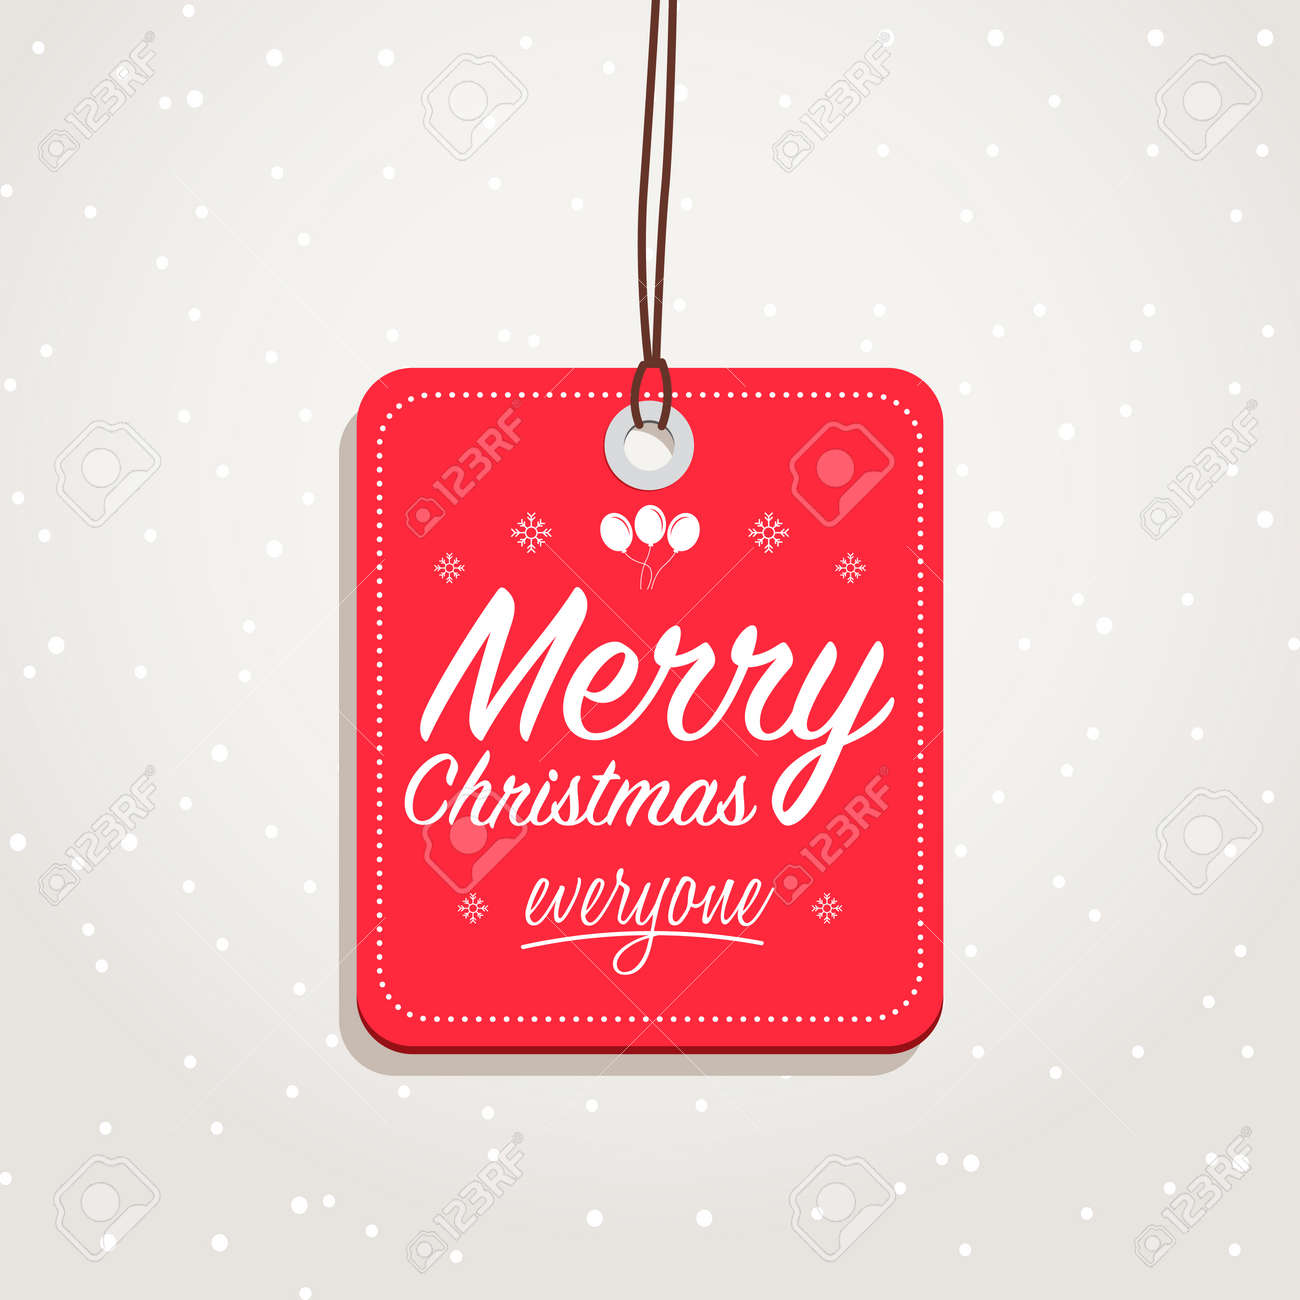 Merry Christmas Everyone >> Merry Christmas Everyone Badge Royalty Free Cliparts Vectors And